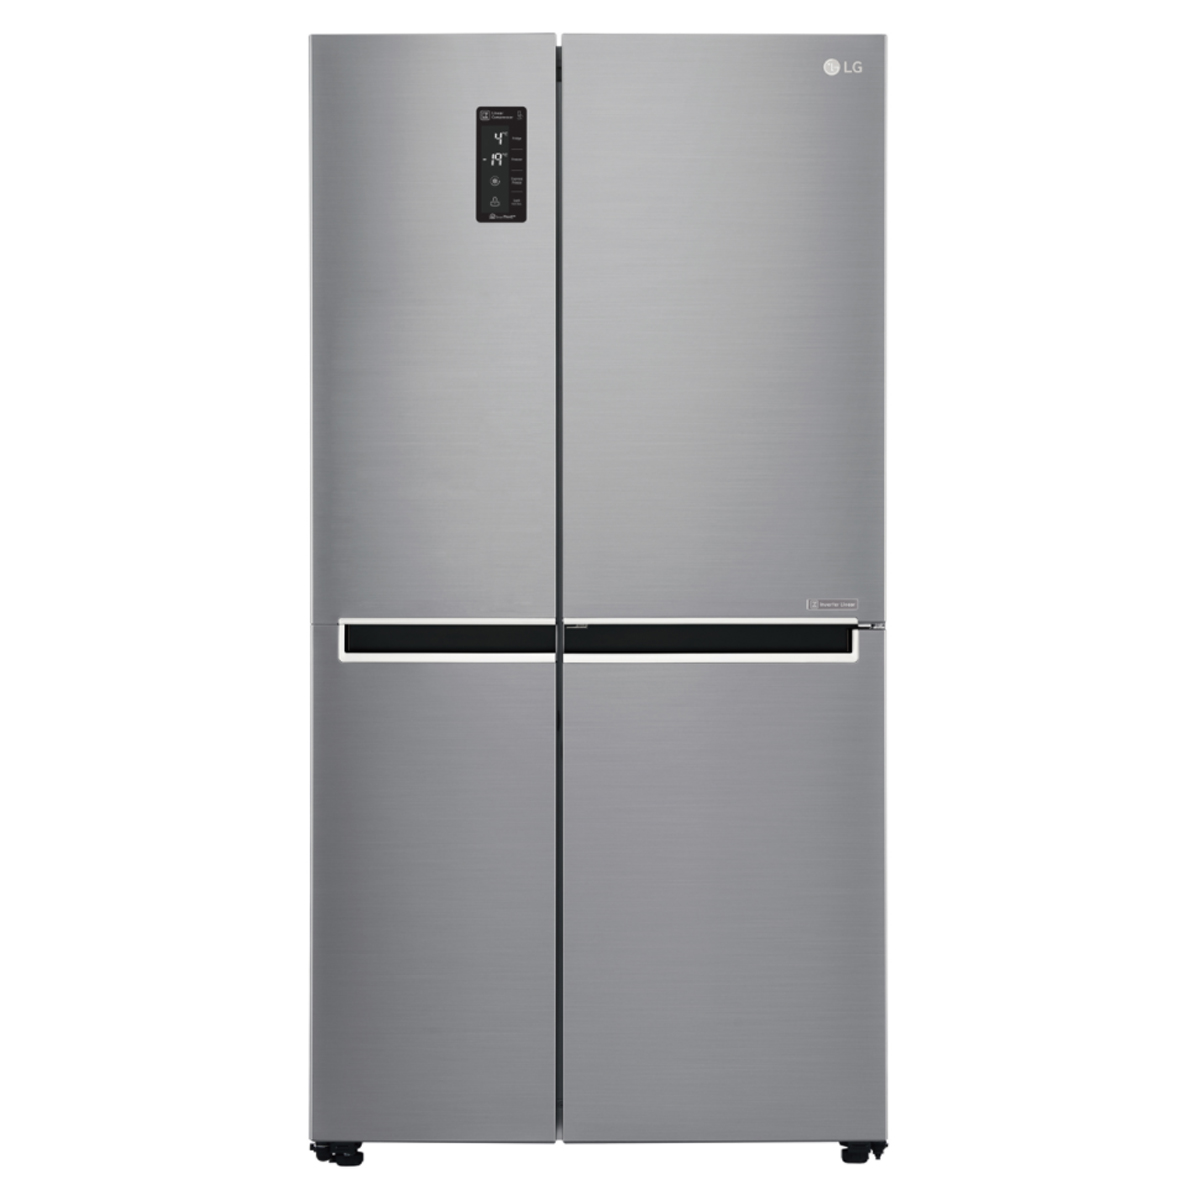 LG GS-B680PL 687Litres Side by Side Fridge 43376